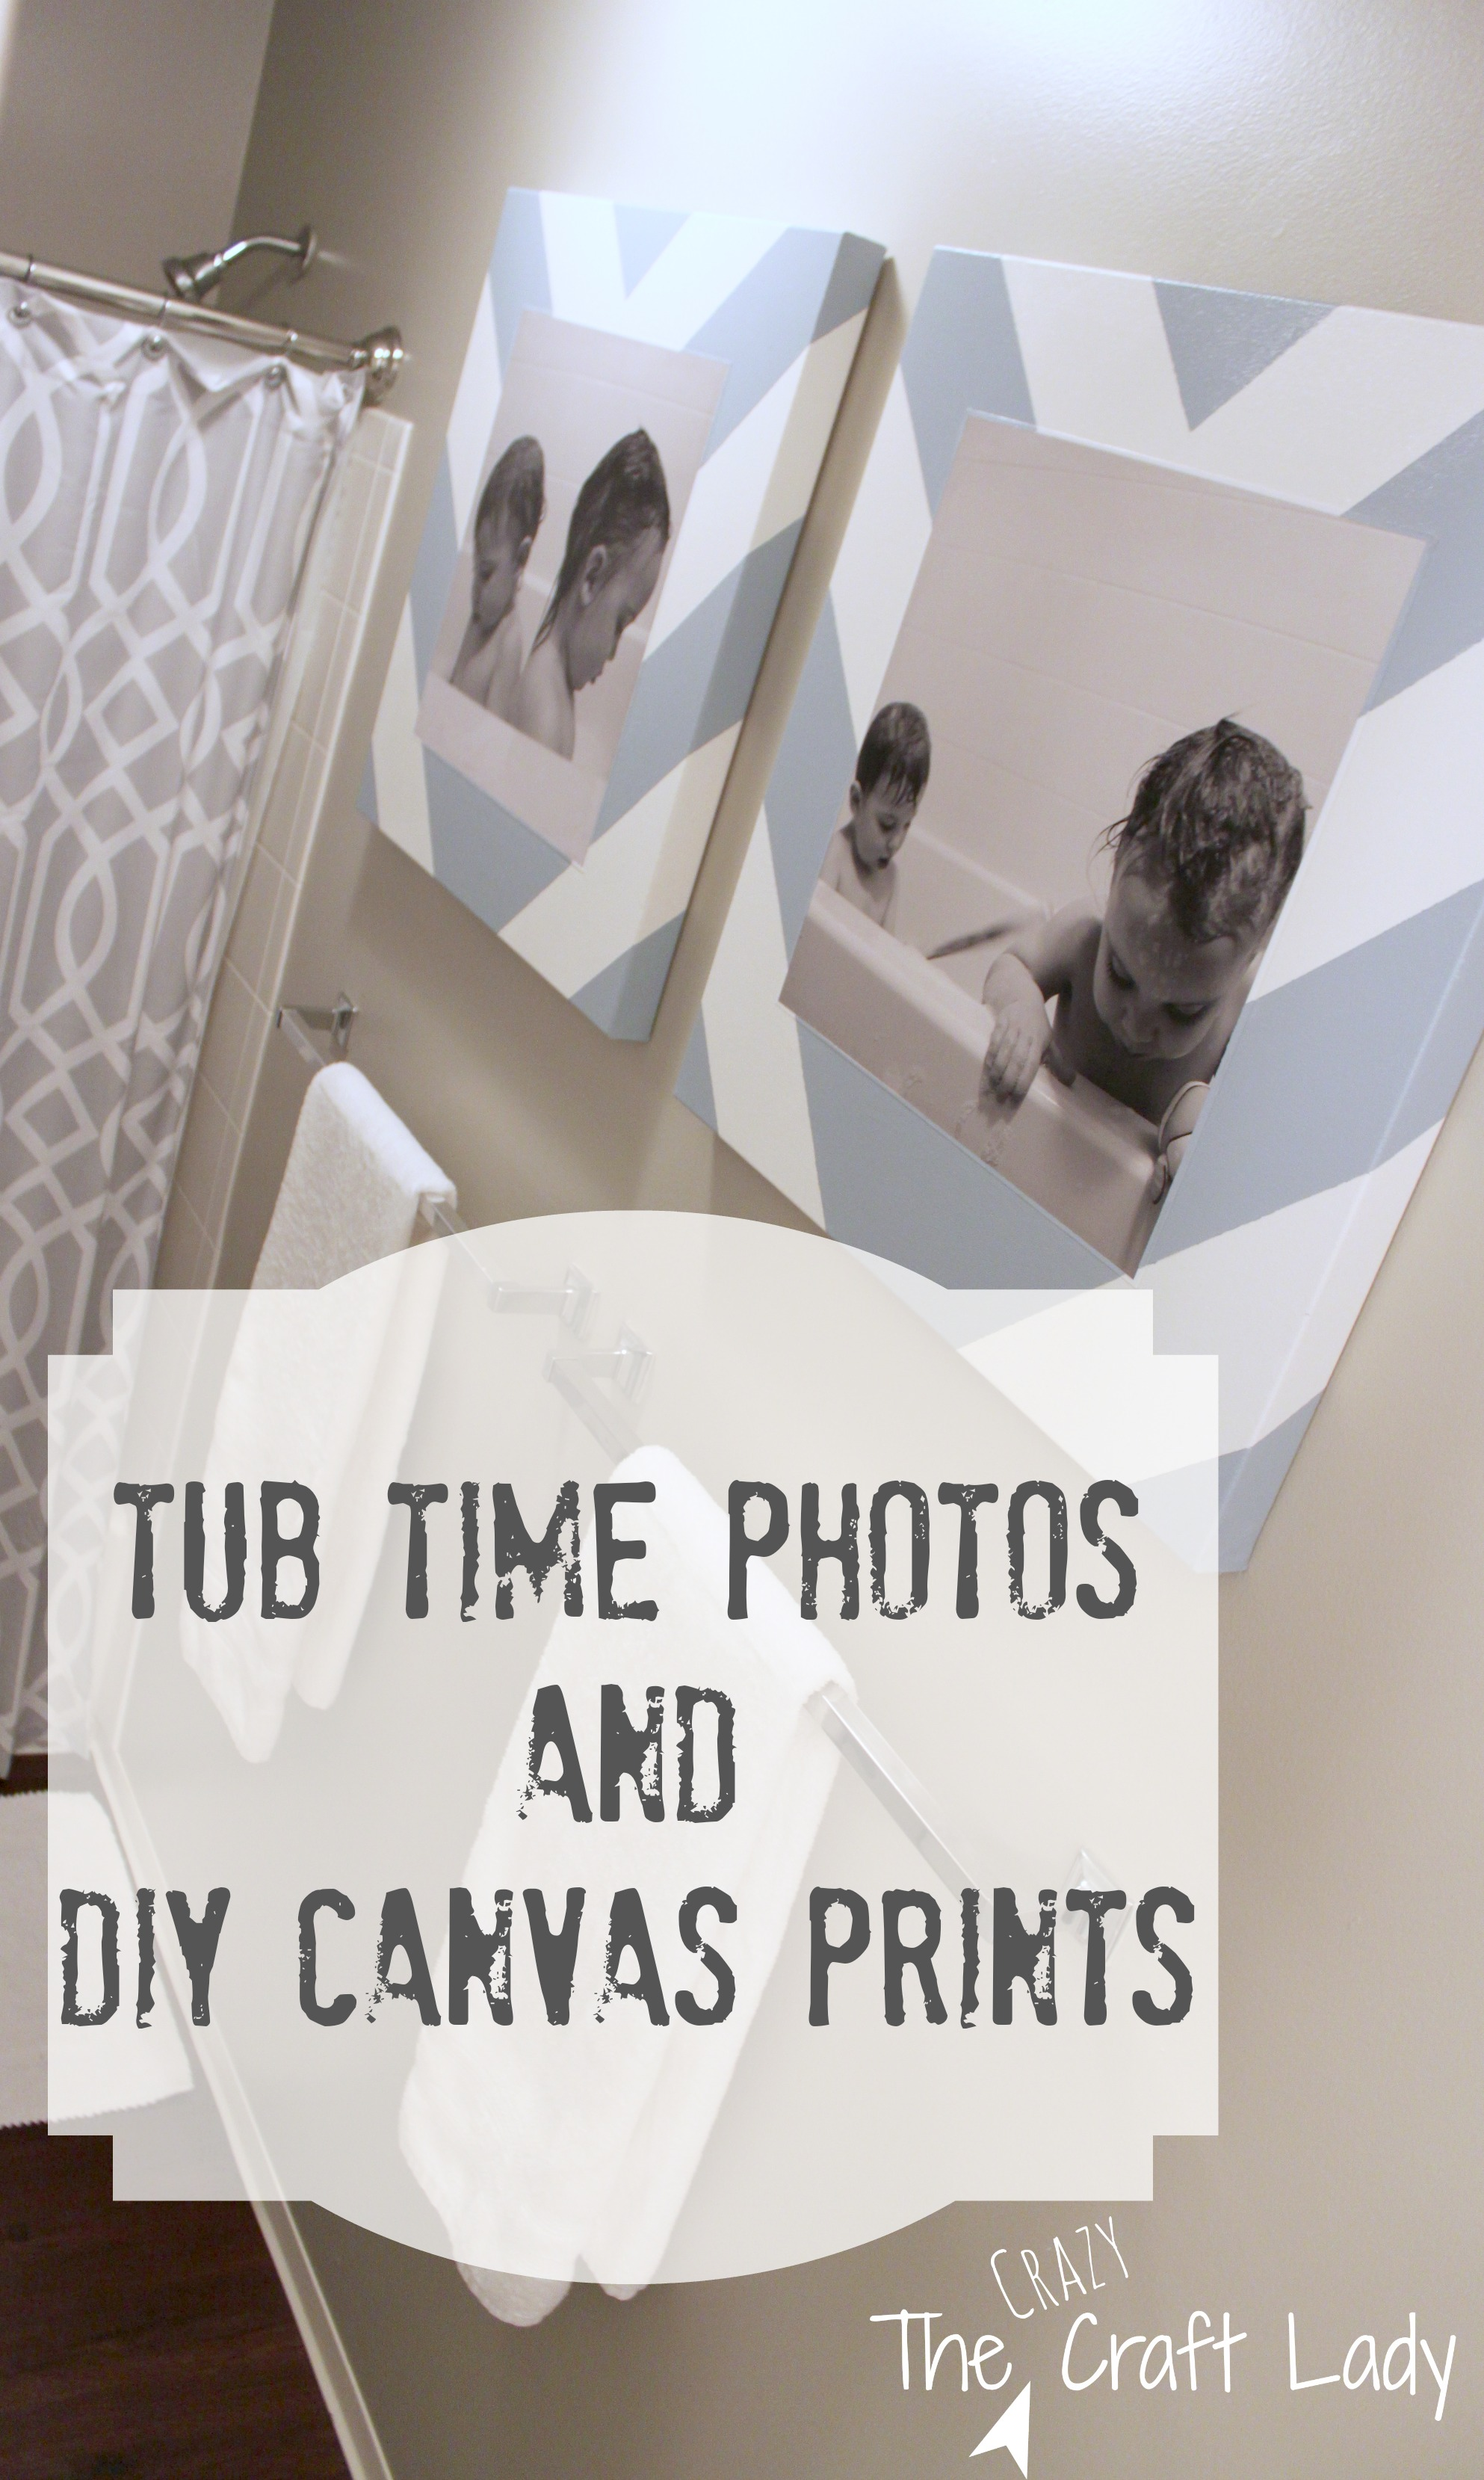 Bath Time Photos and DIY Canvas Prints - The Crazy Craft Lady